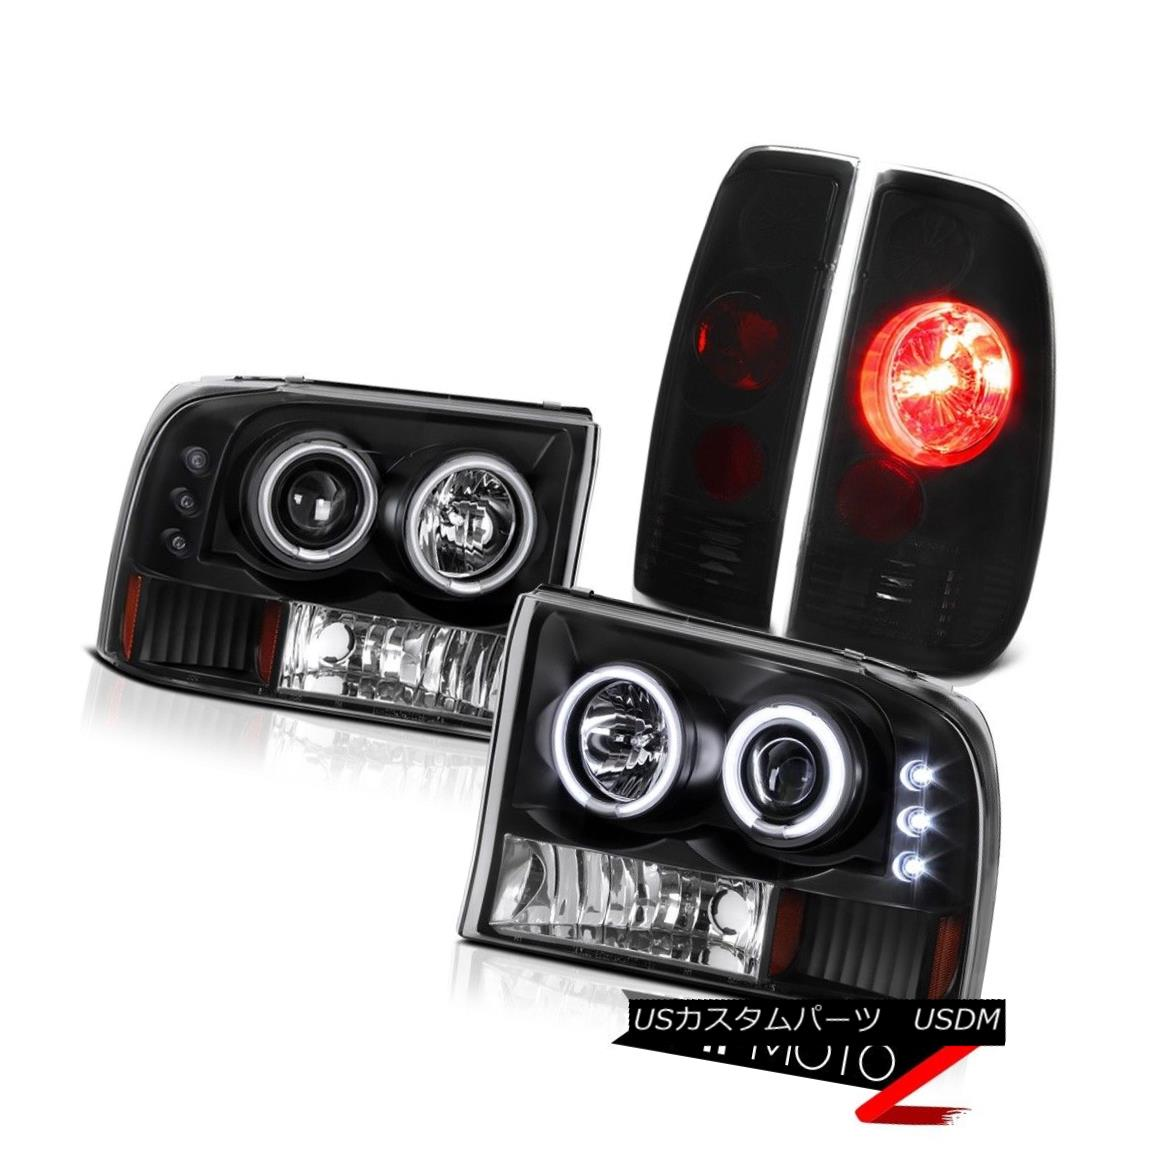 テールライト [SINISTER BLK] CCFL Halo Headlights Bumper Tail Lamp 99-04 F250 F350 Super Duty [SINISTER BLK] CCFL Haloヘッドライトバンパーテールランプ99-04 F250 F350 Super Duty